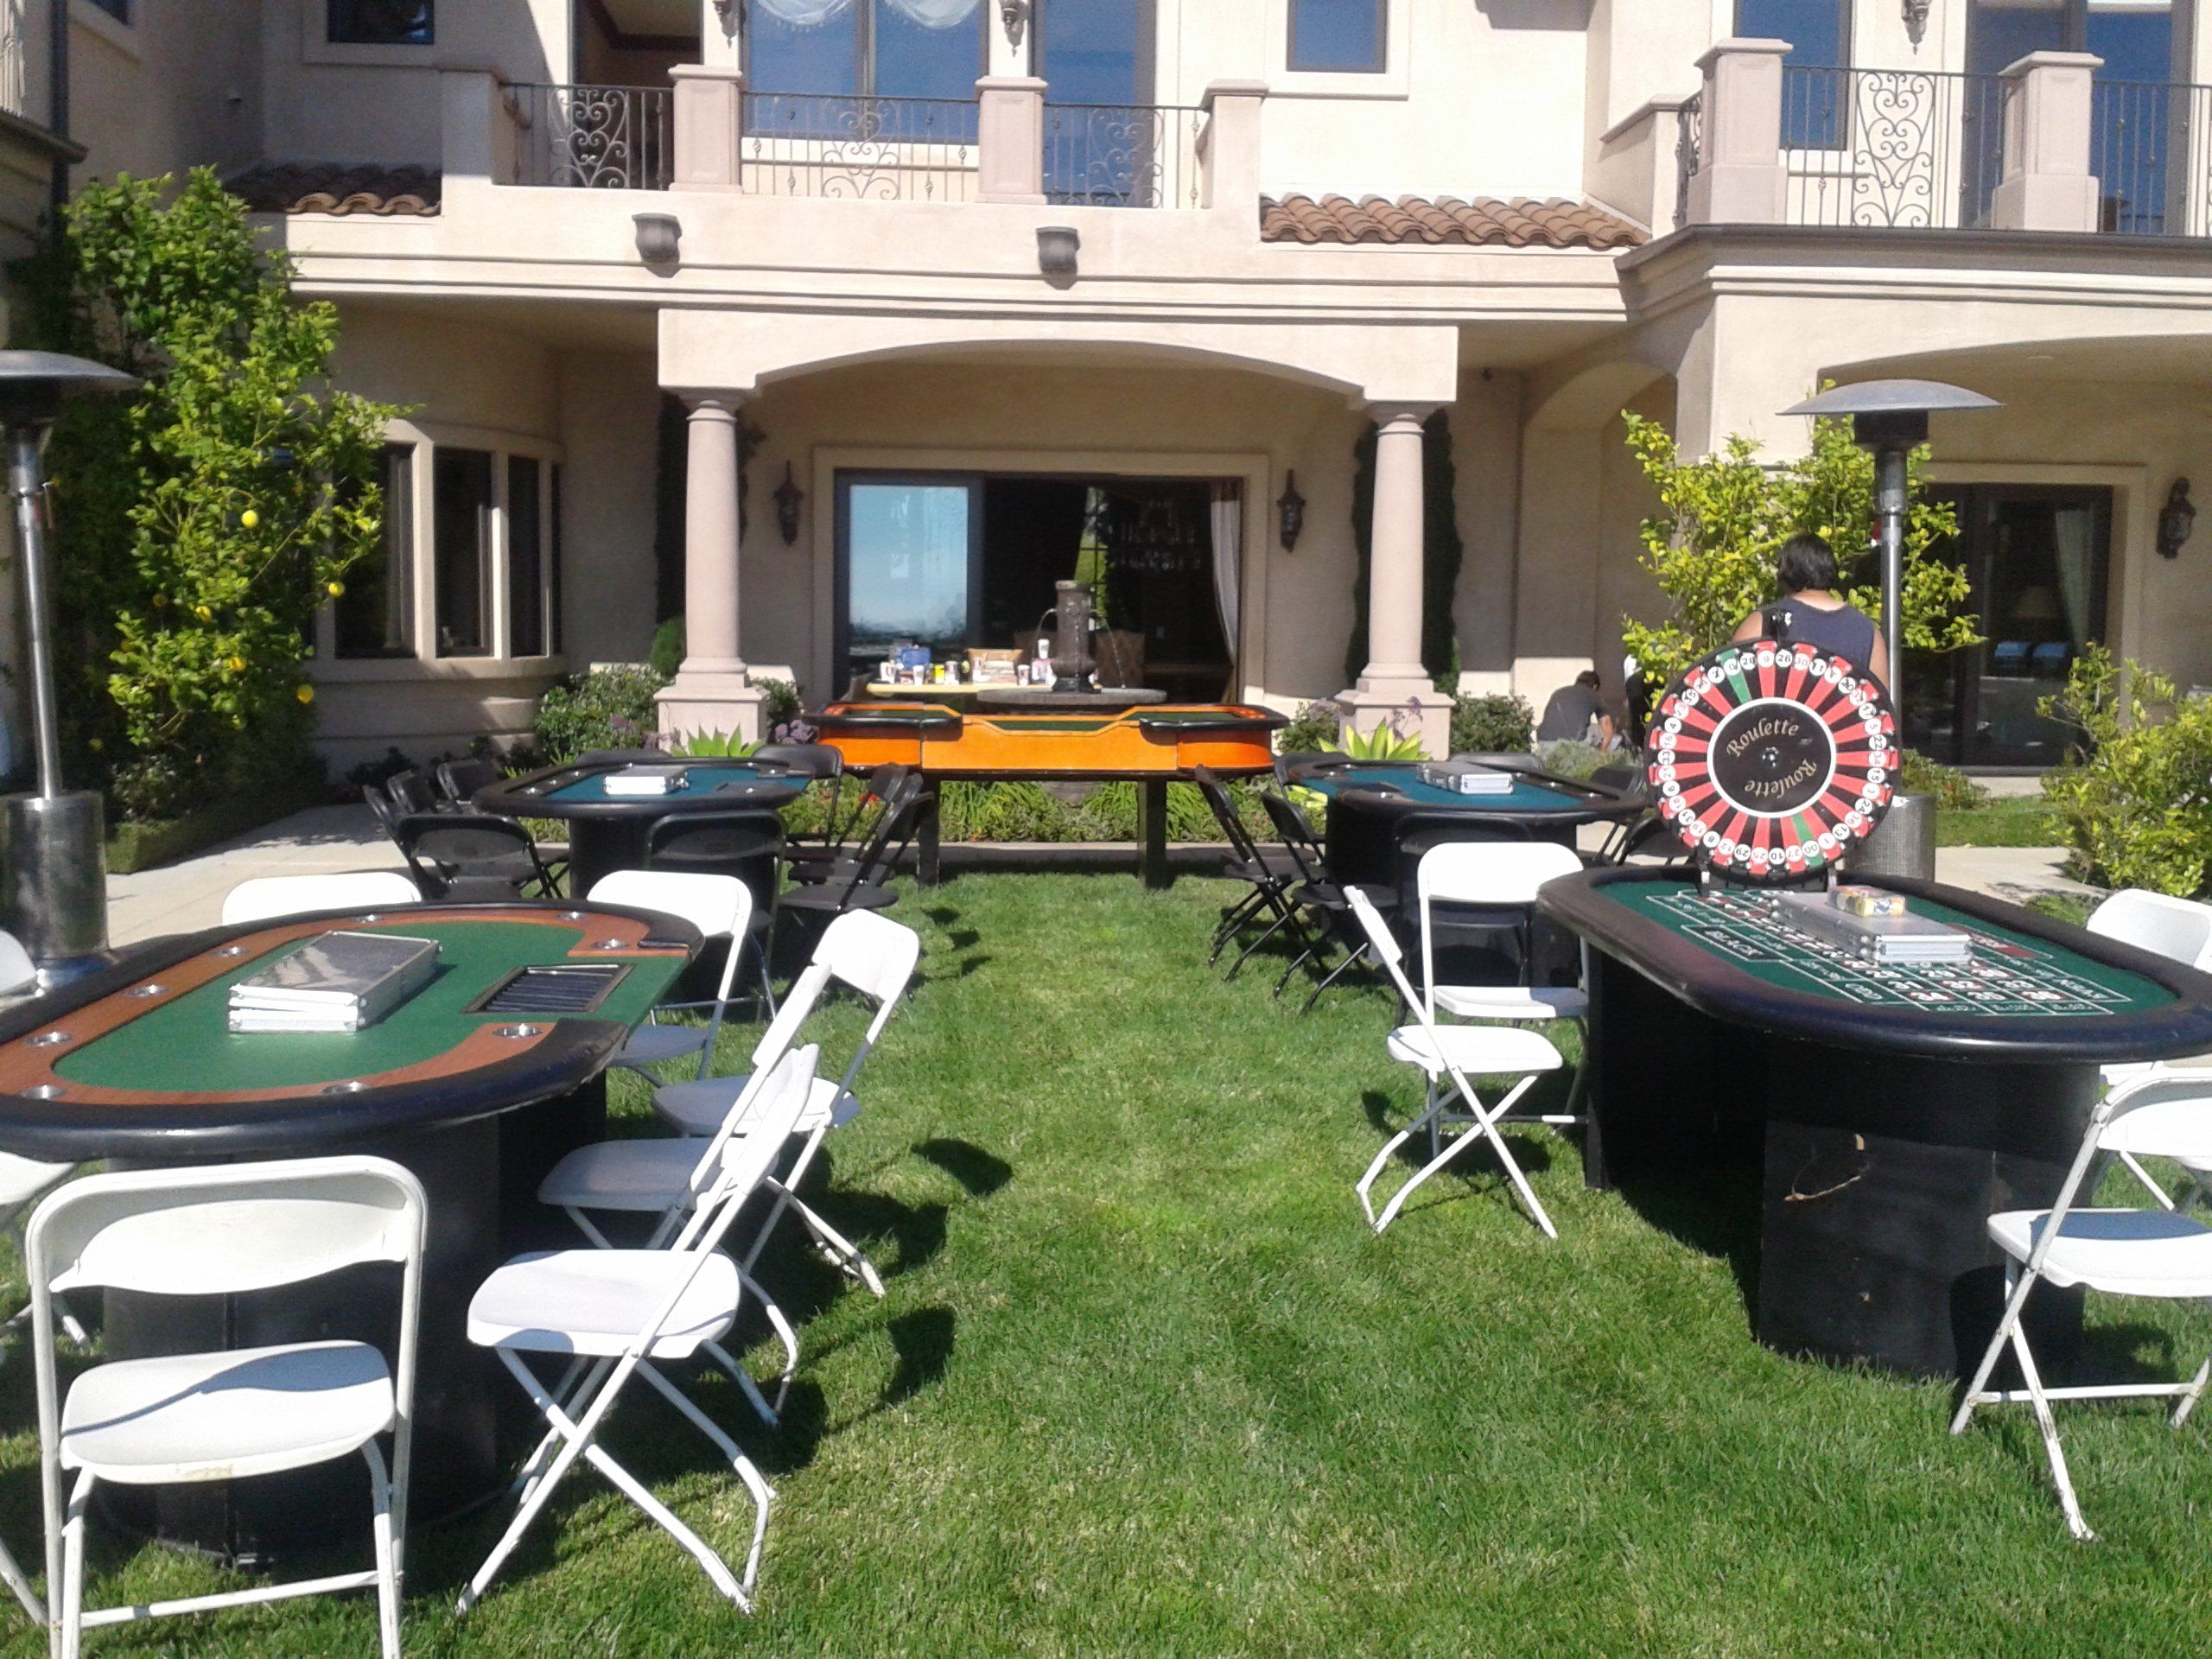 Backyard Casino Themed Party 08 17 13 Event